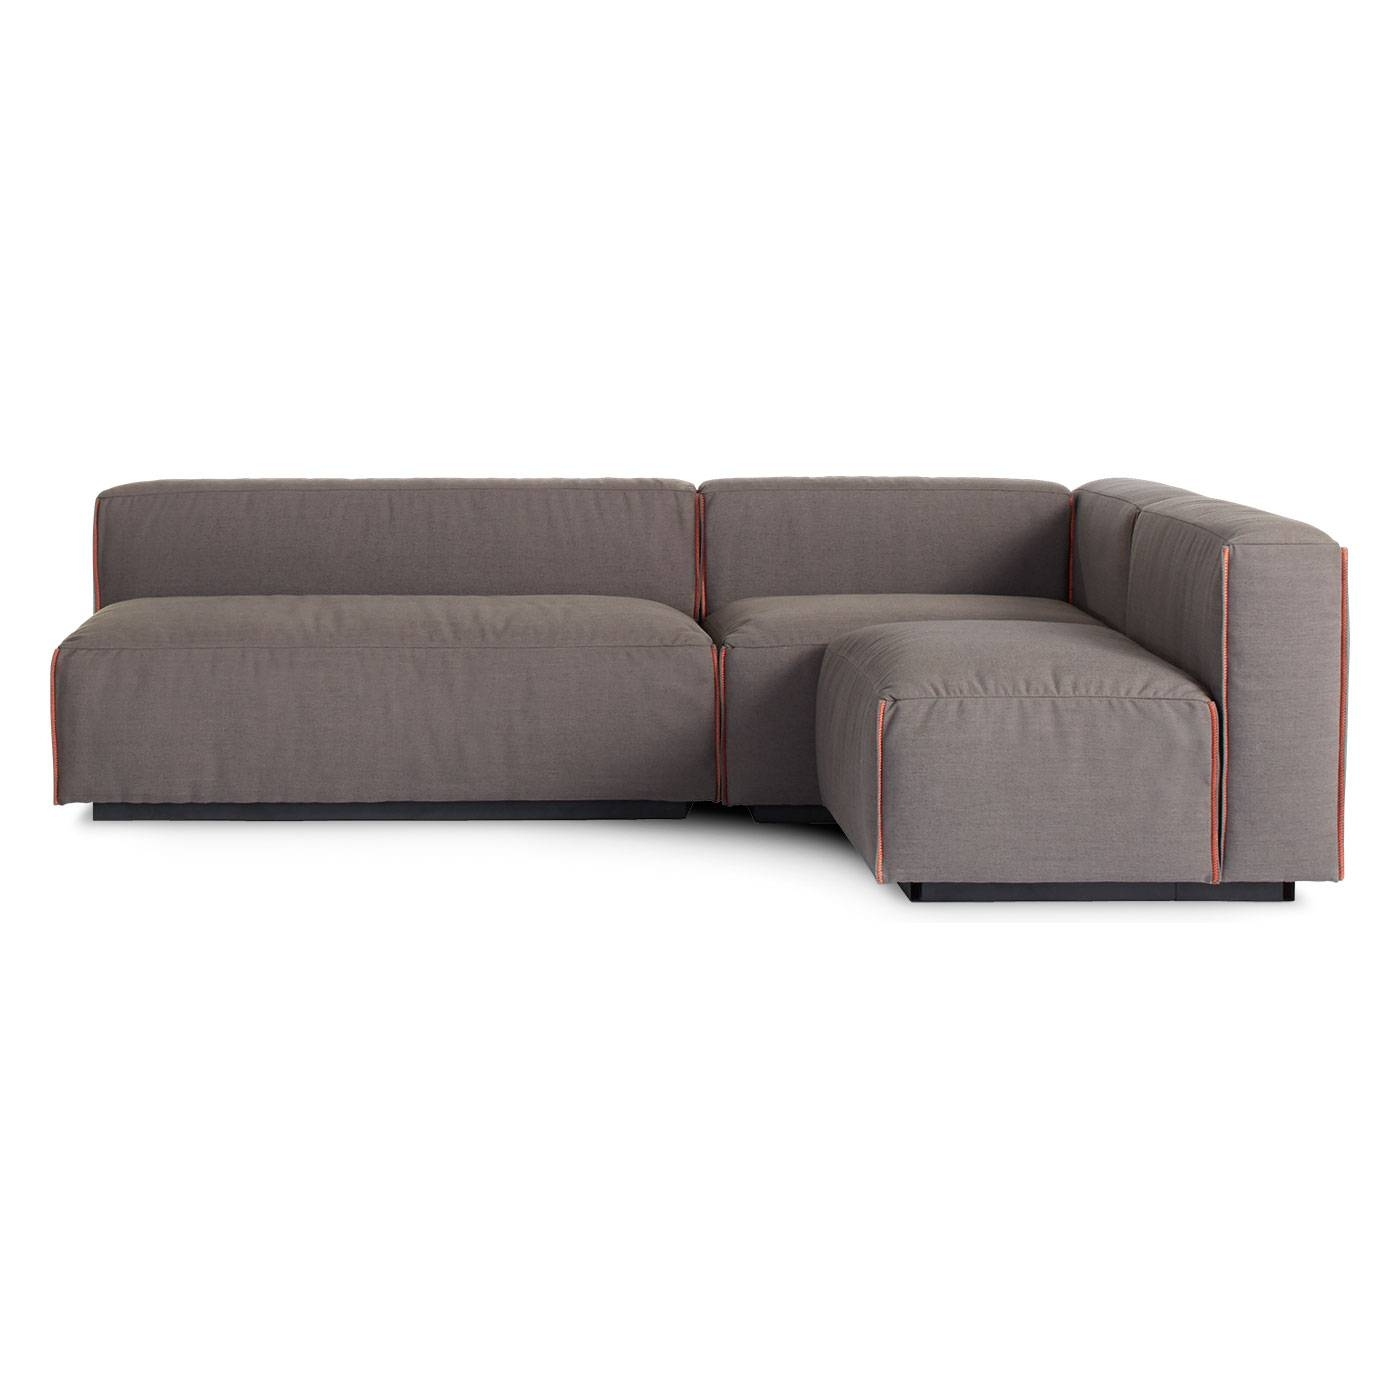 Cleon Medium Sectional - Armless Sectional | Blu Dot with regard to Armless Sectional Sofa (Image 5 of 30)